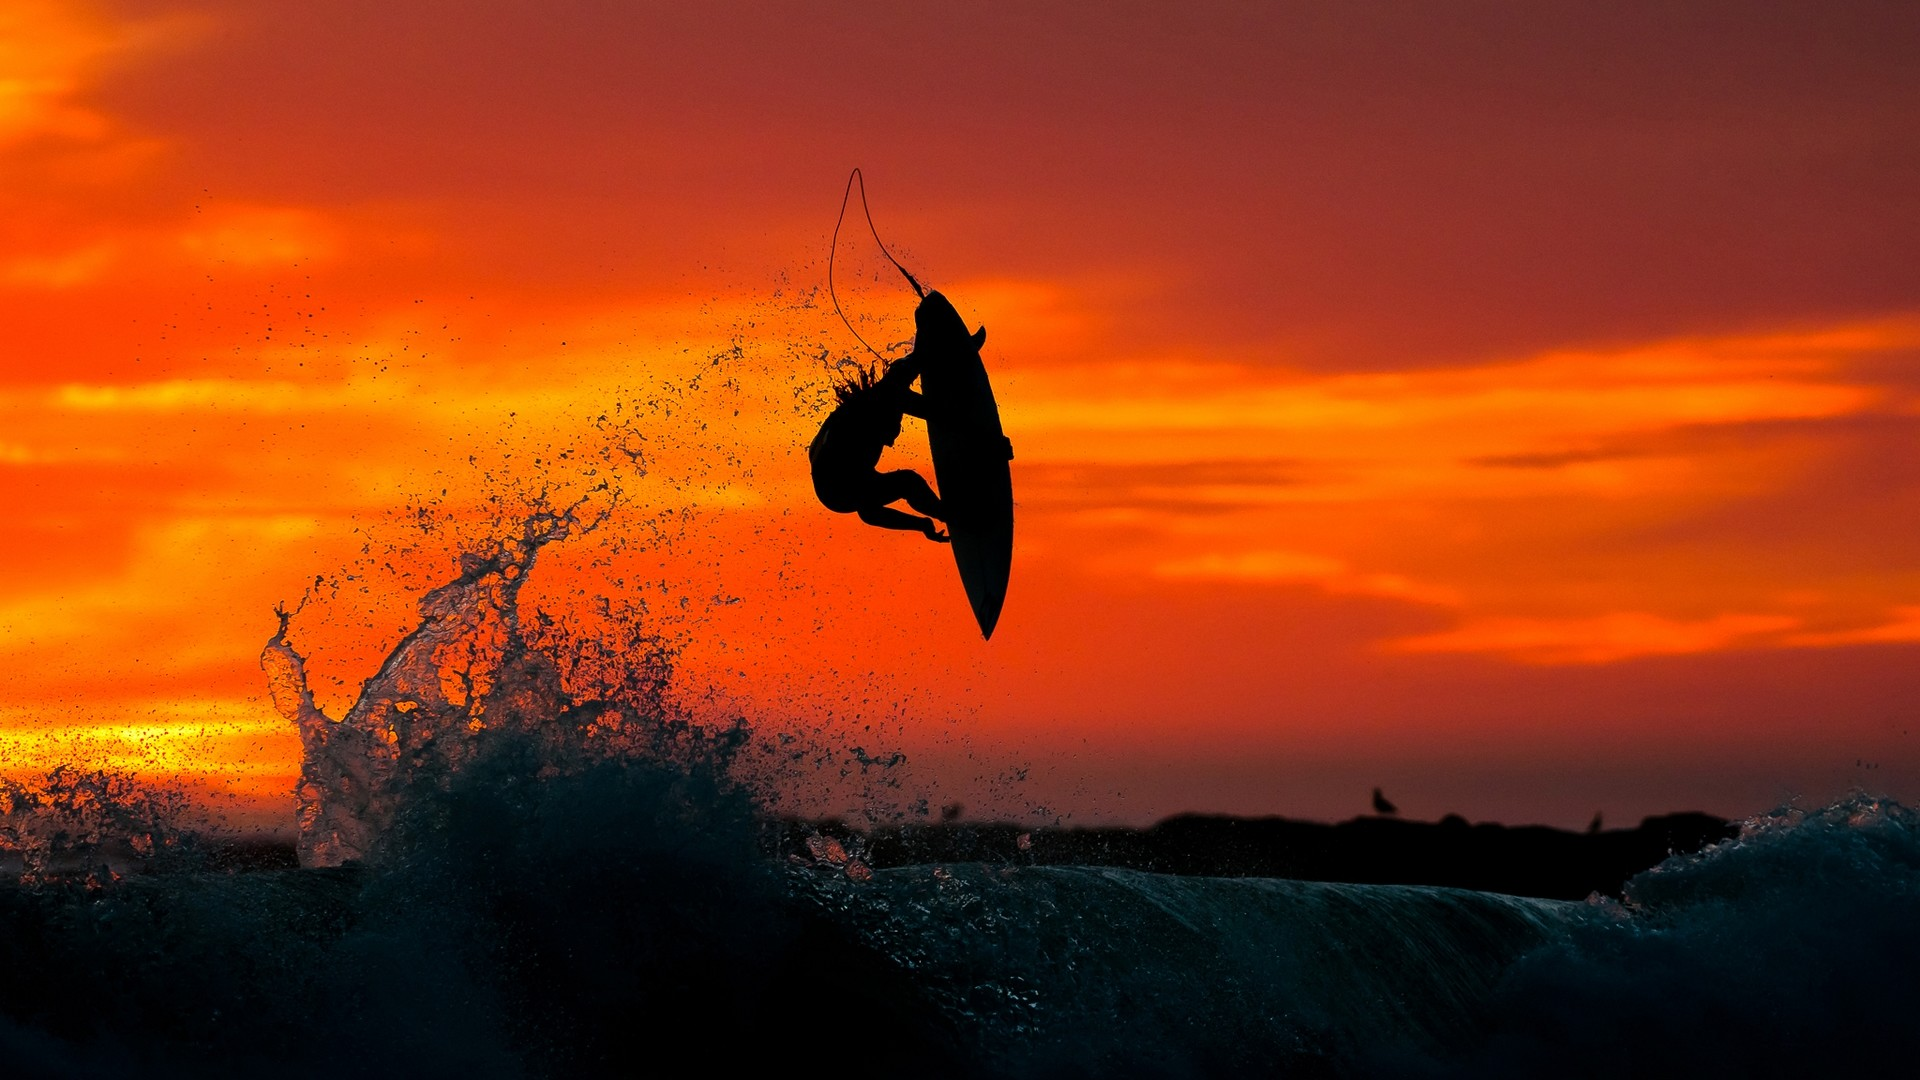 Res: 1920x1080, Sports - Surfing Sunset Wallpaper